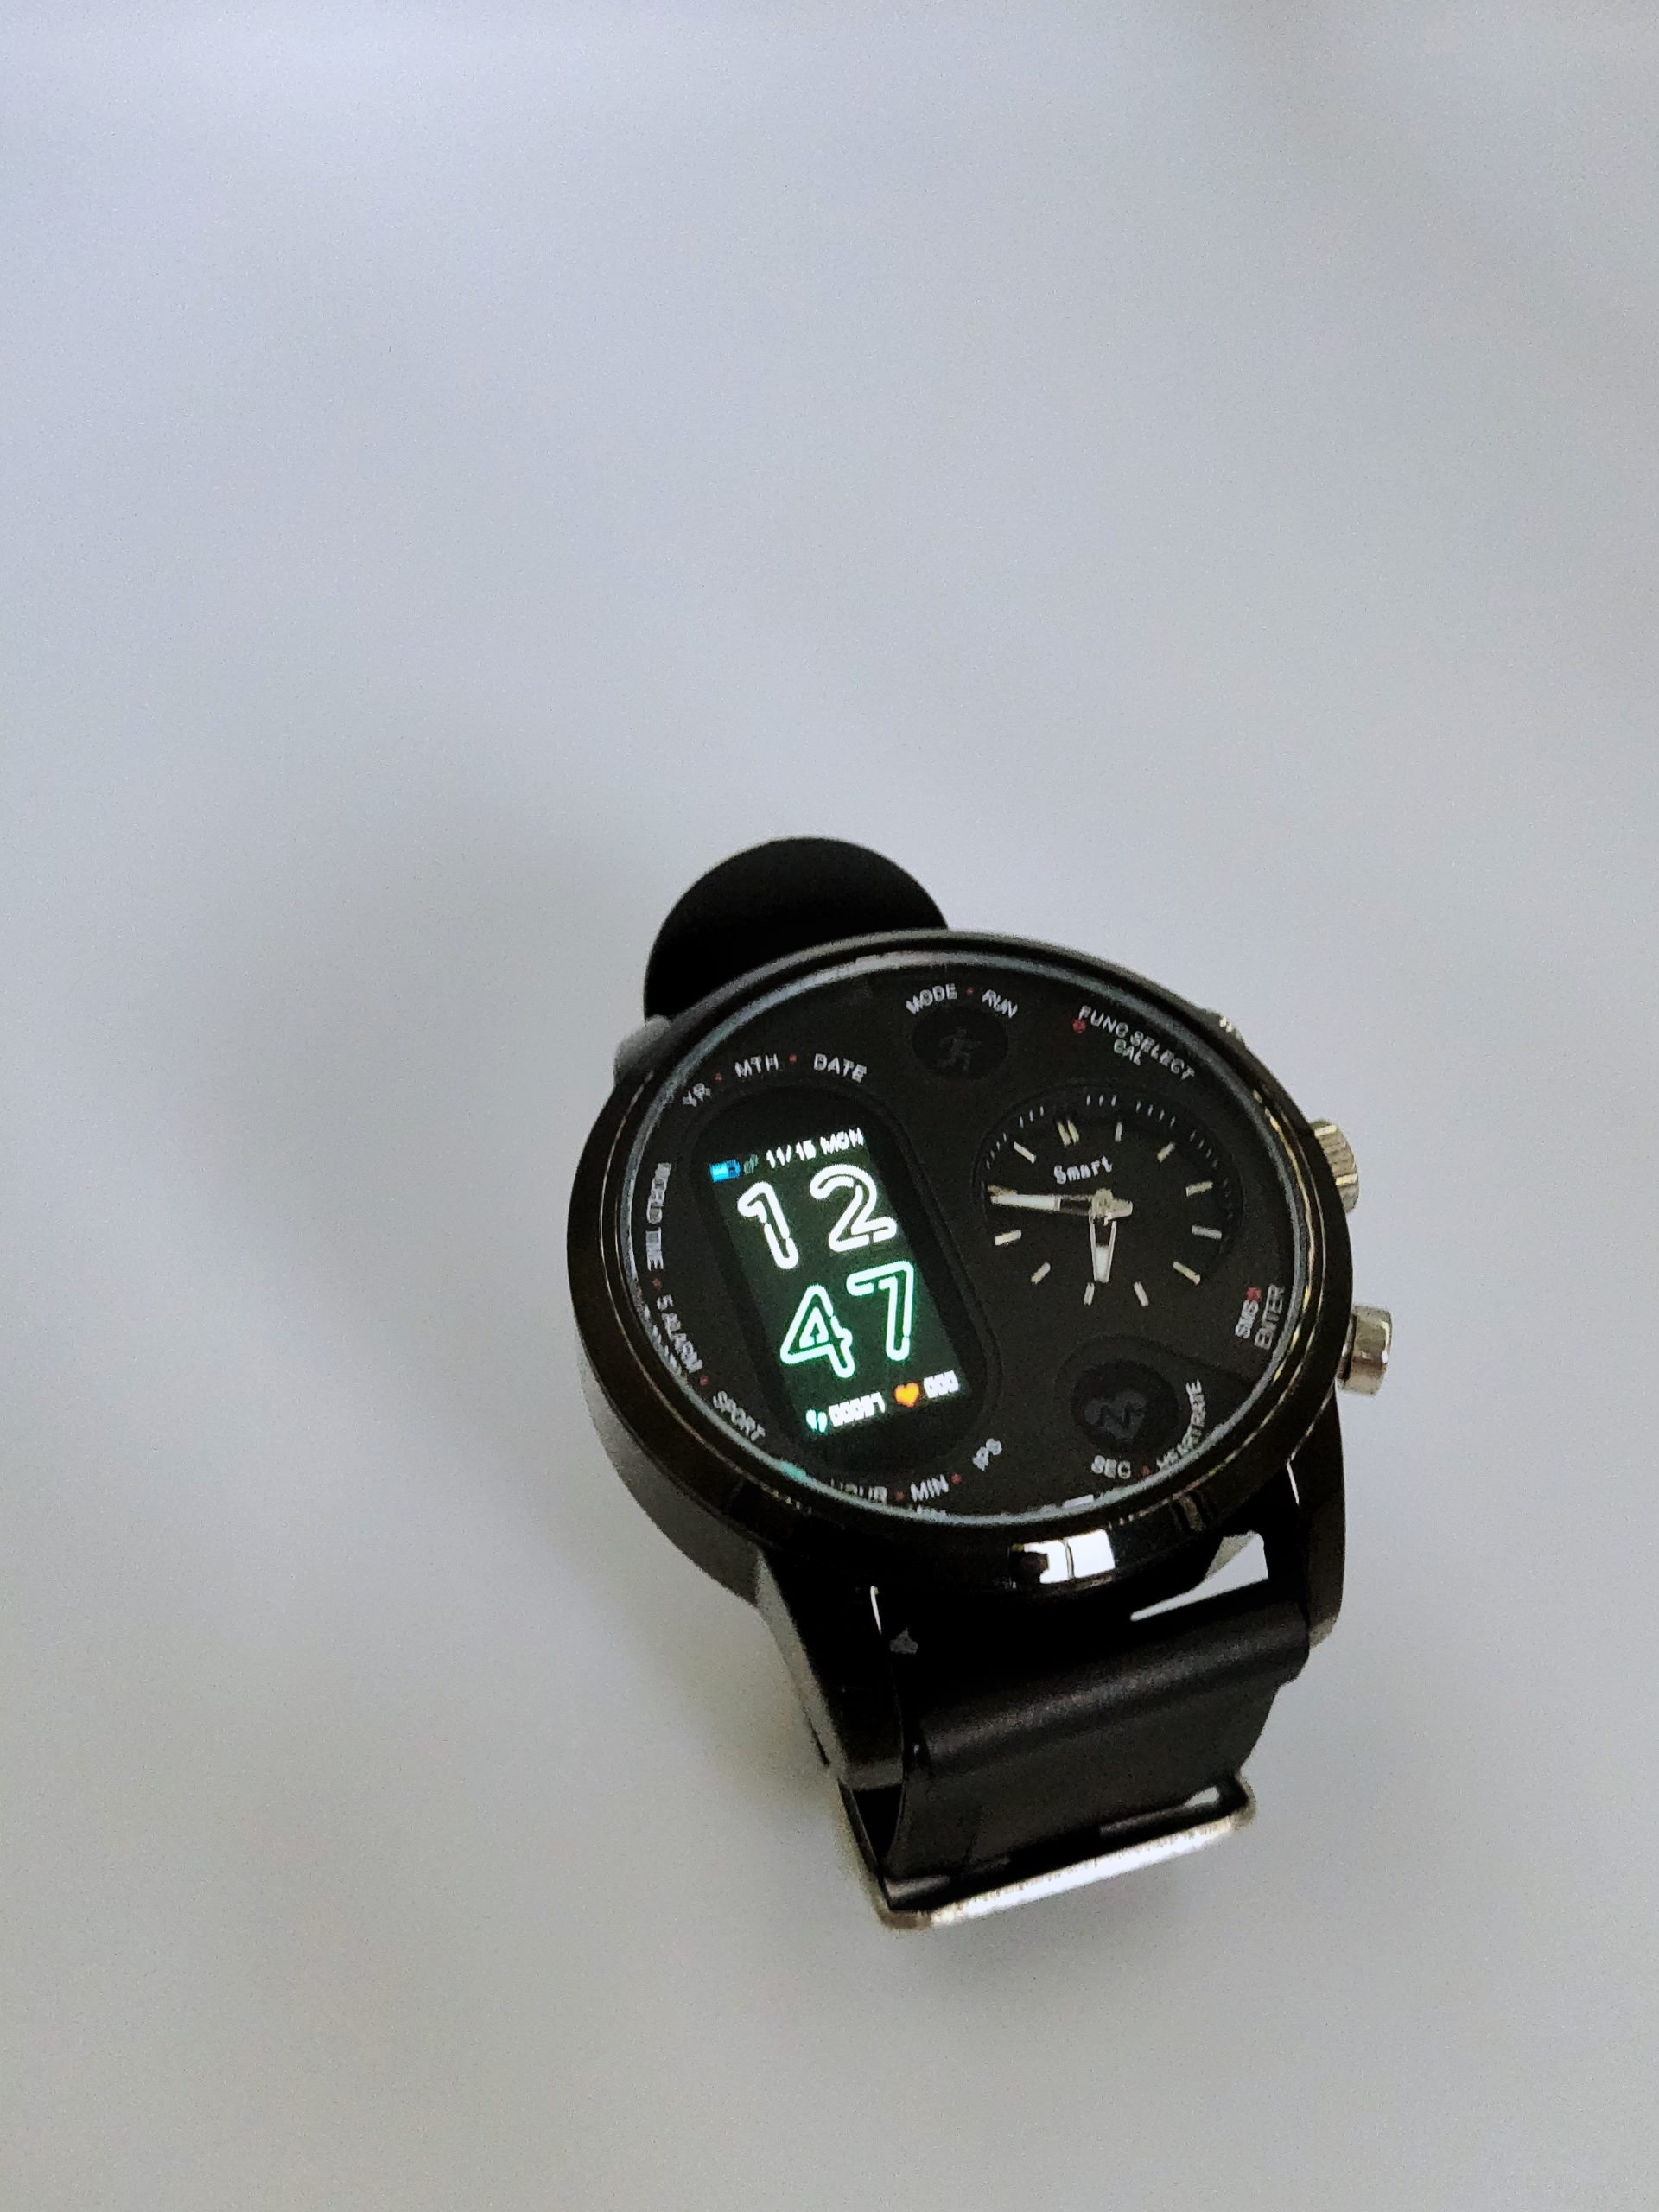 Special Features of Bit Watch Review